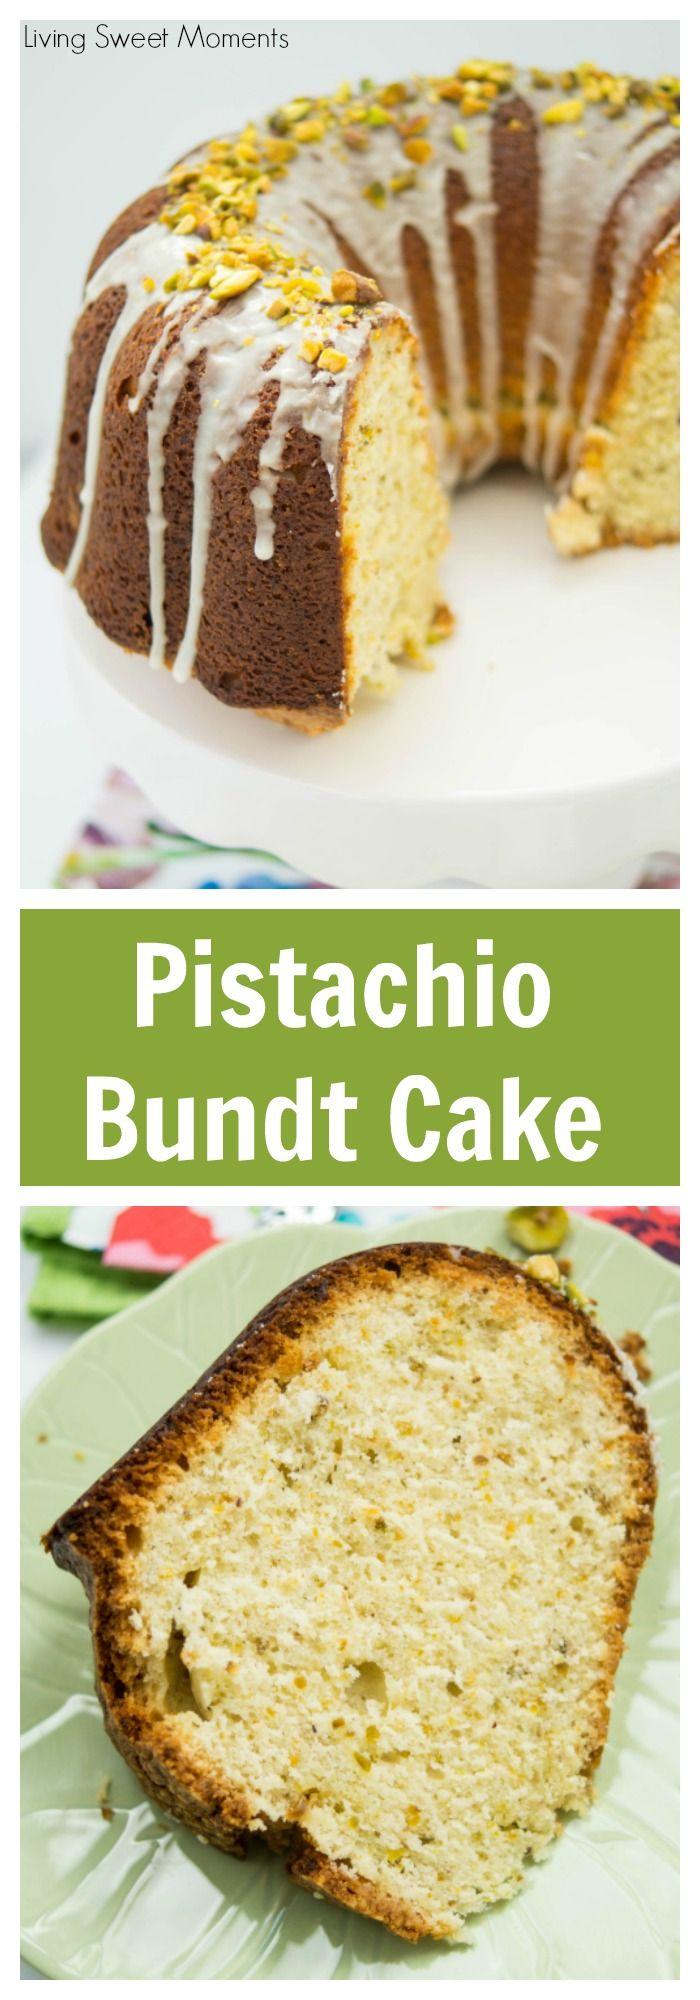 Pistachio bundt cake recipe bundt cakes cakes and on for Easy bundt cake recipes from scratch